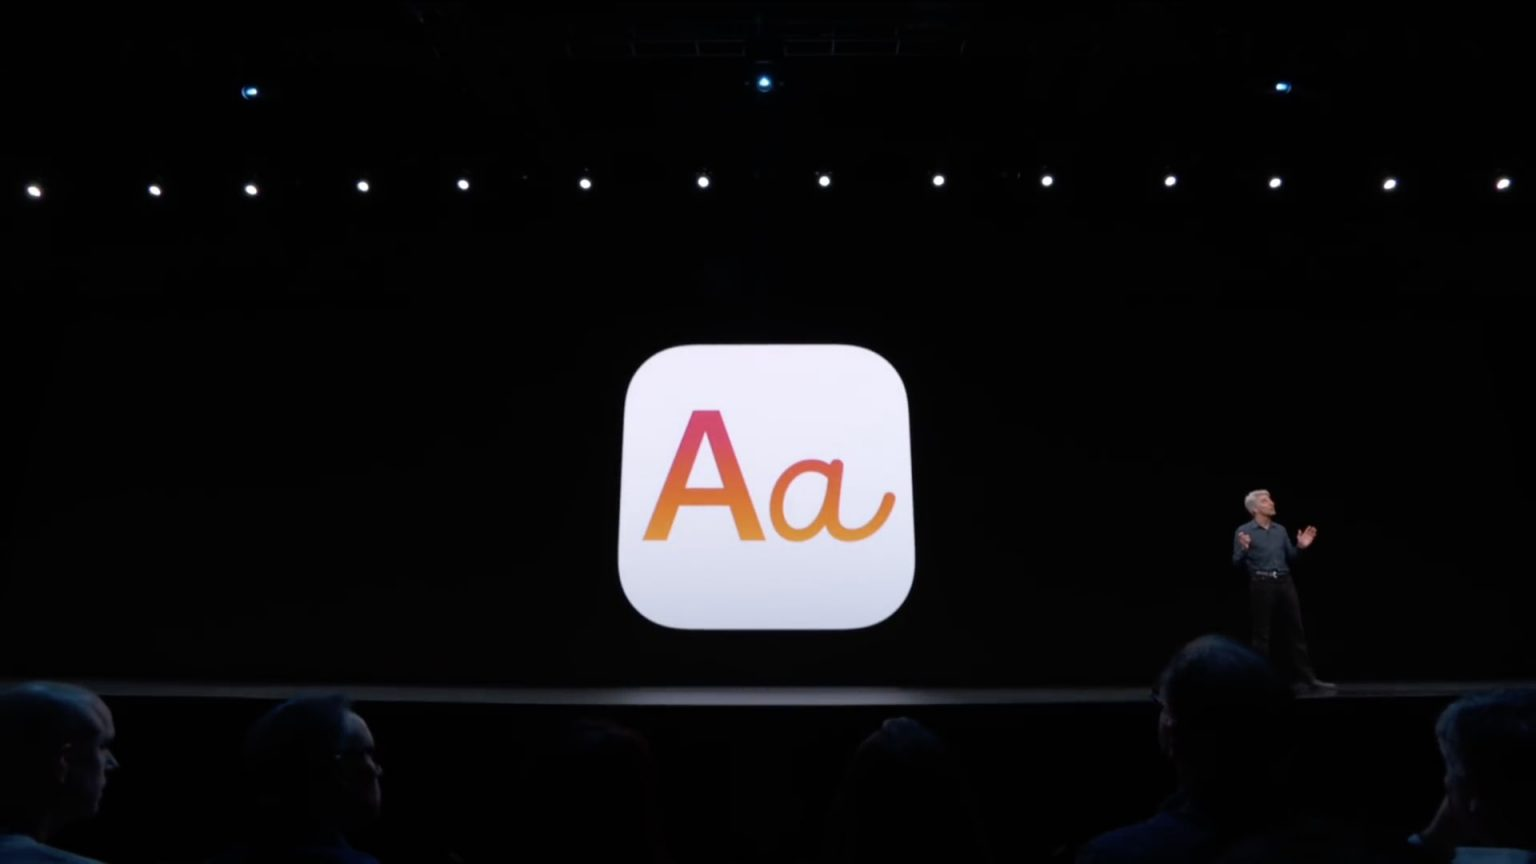 install, manage and use custom fonts on your iPhone and iPad